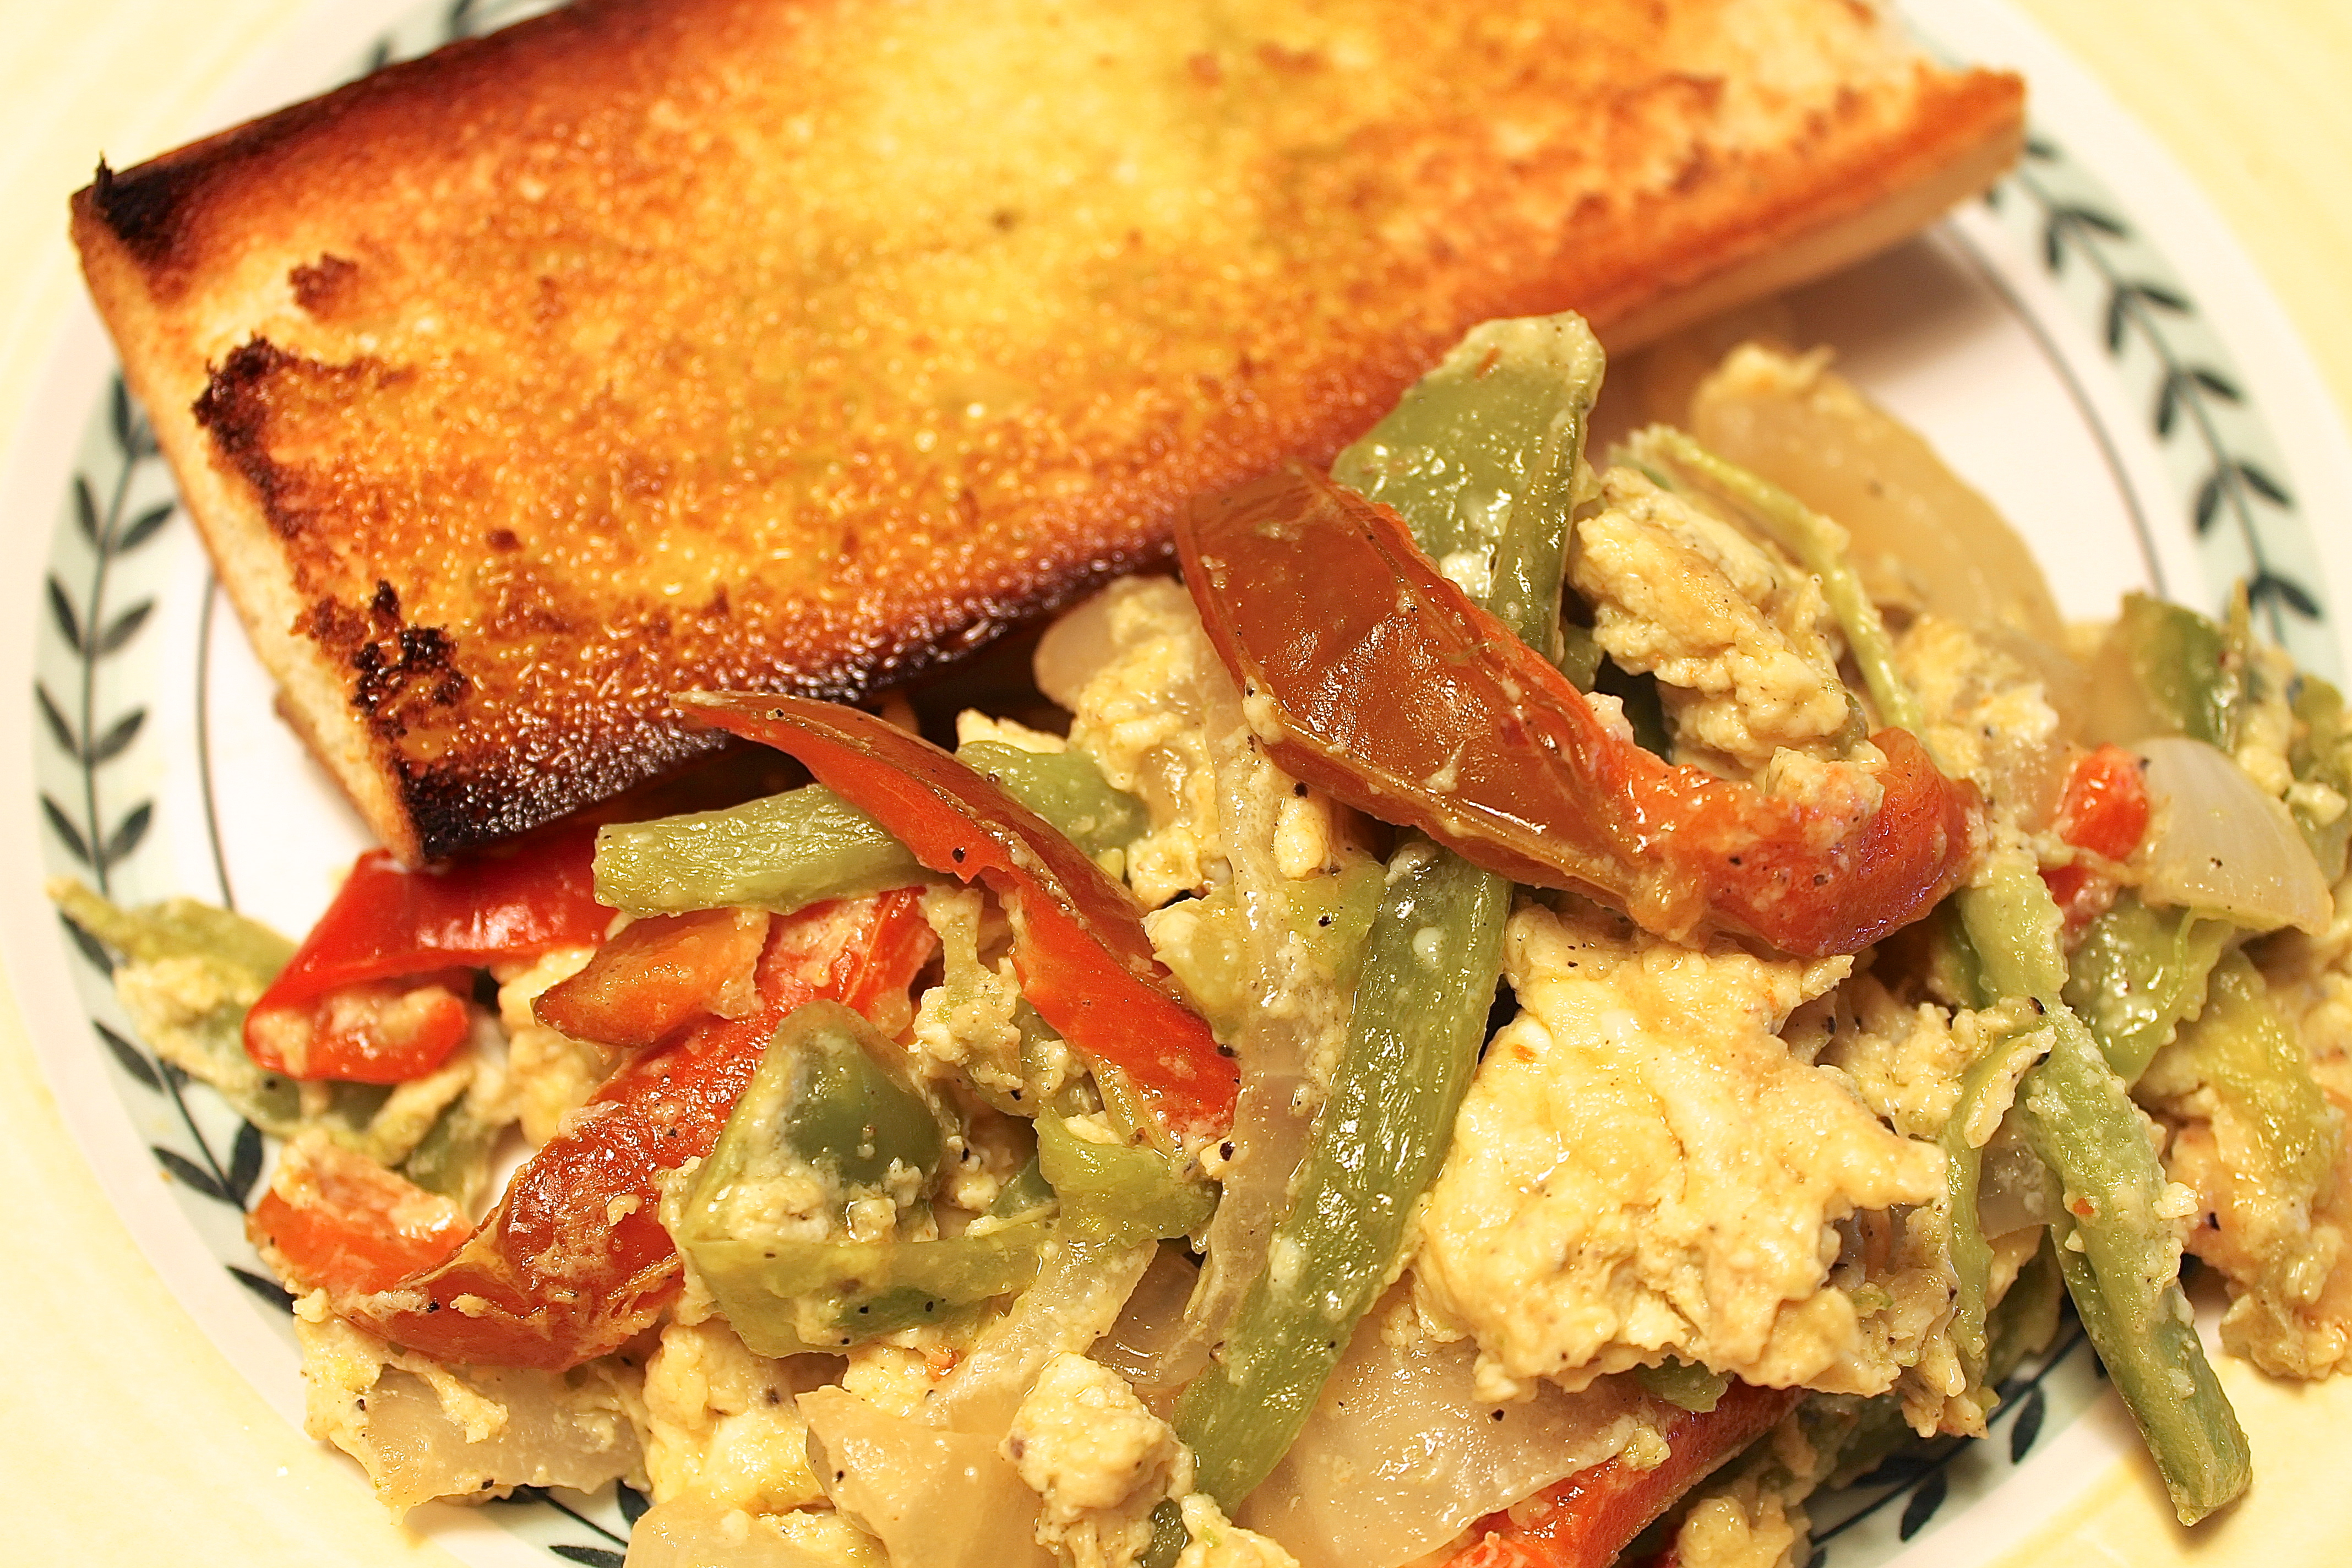 Peppers and Eggs, A Simple Italian Meal | Back Road Journal